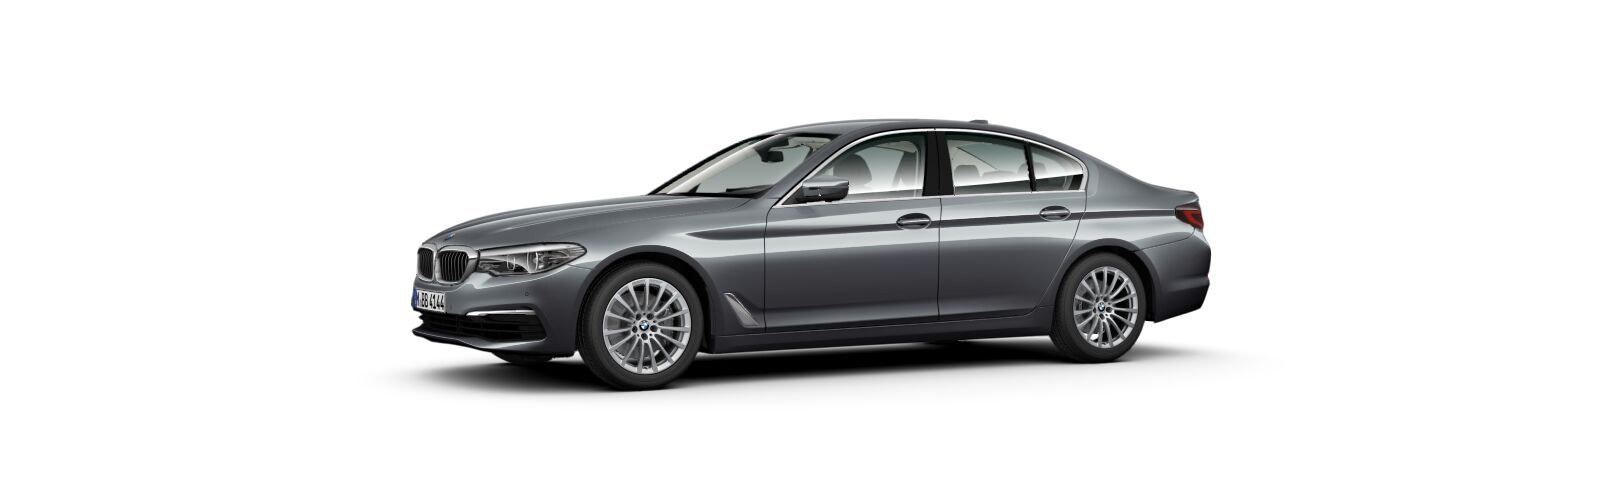 bmw 1 series price guide